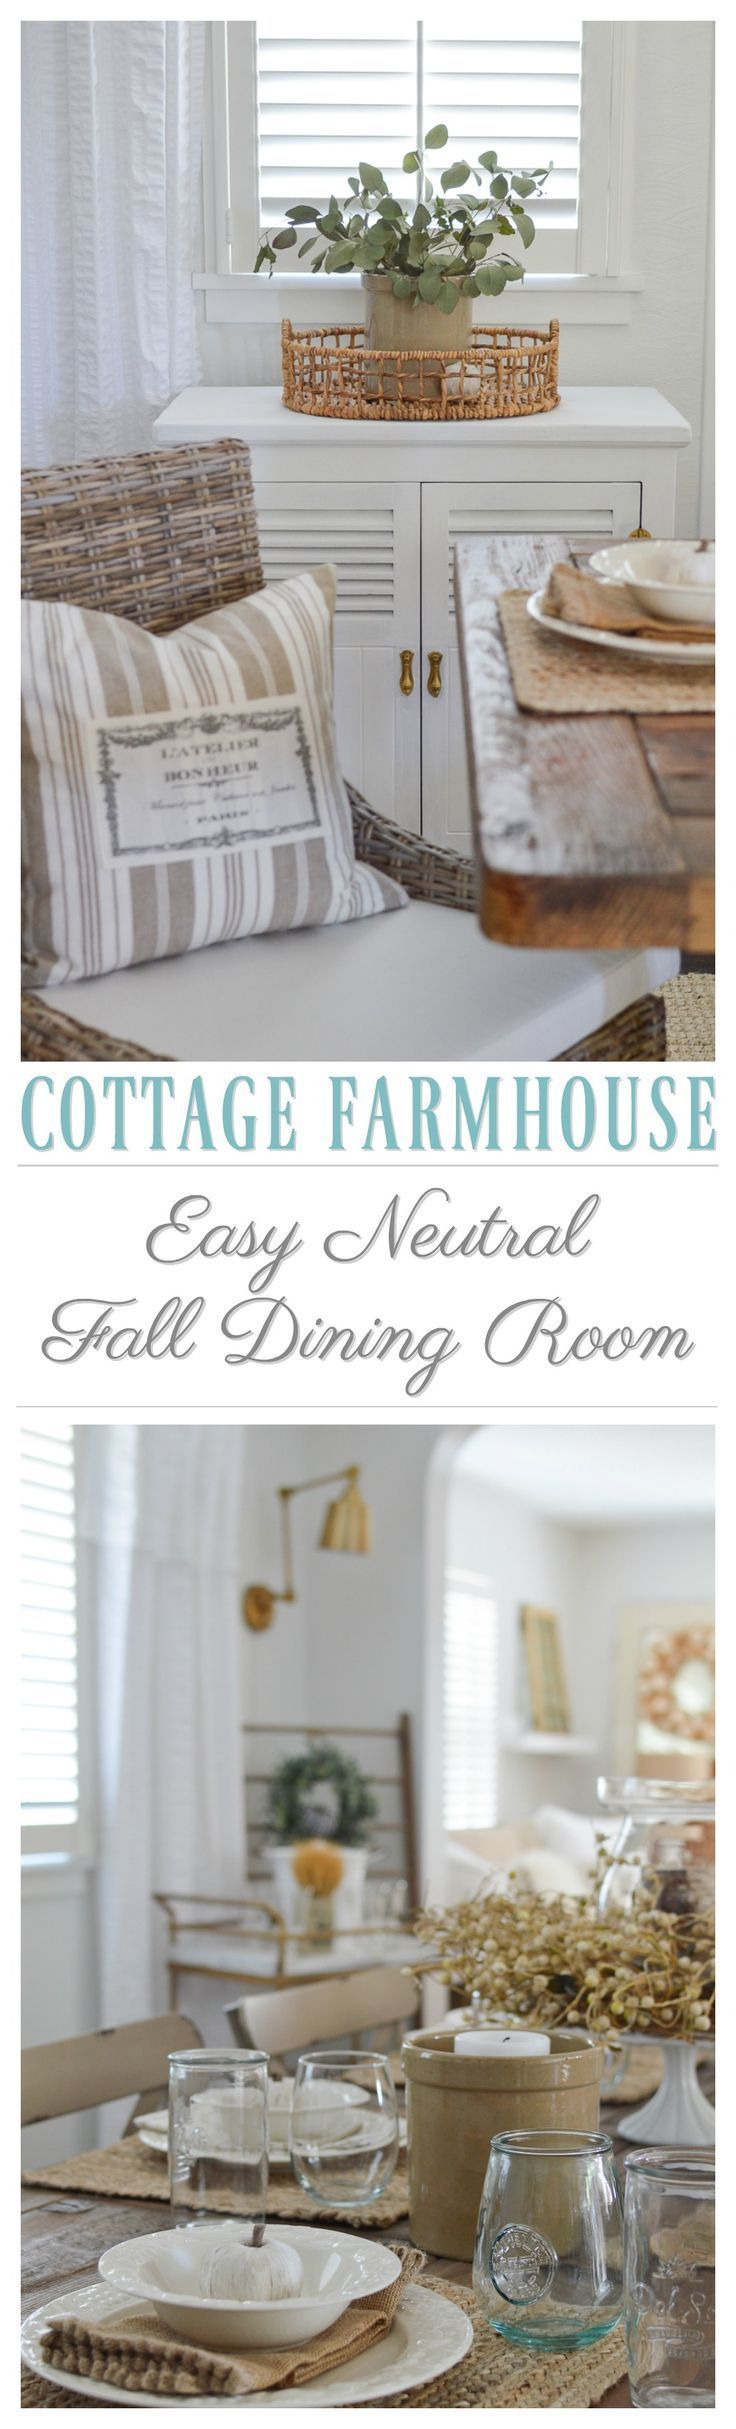 Diy room decor tutorials - Cottage Farmhouse Decorating Ideas For A Simple Autumn Dining Room With Easy Neutral Decor And Fall